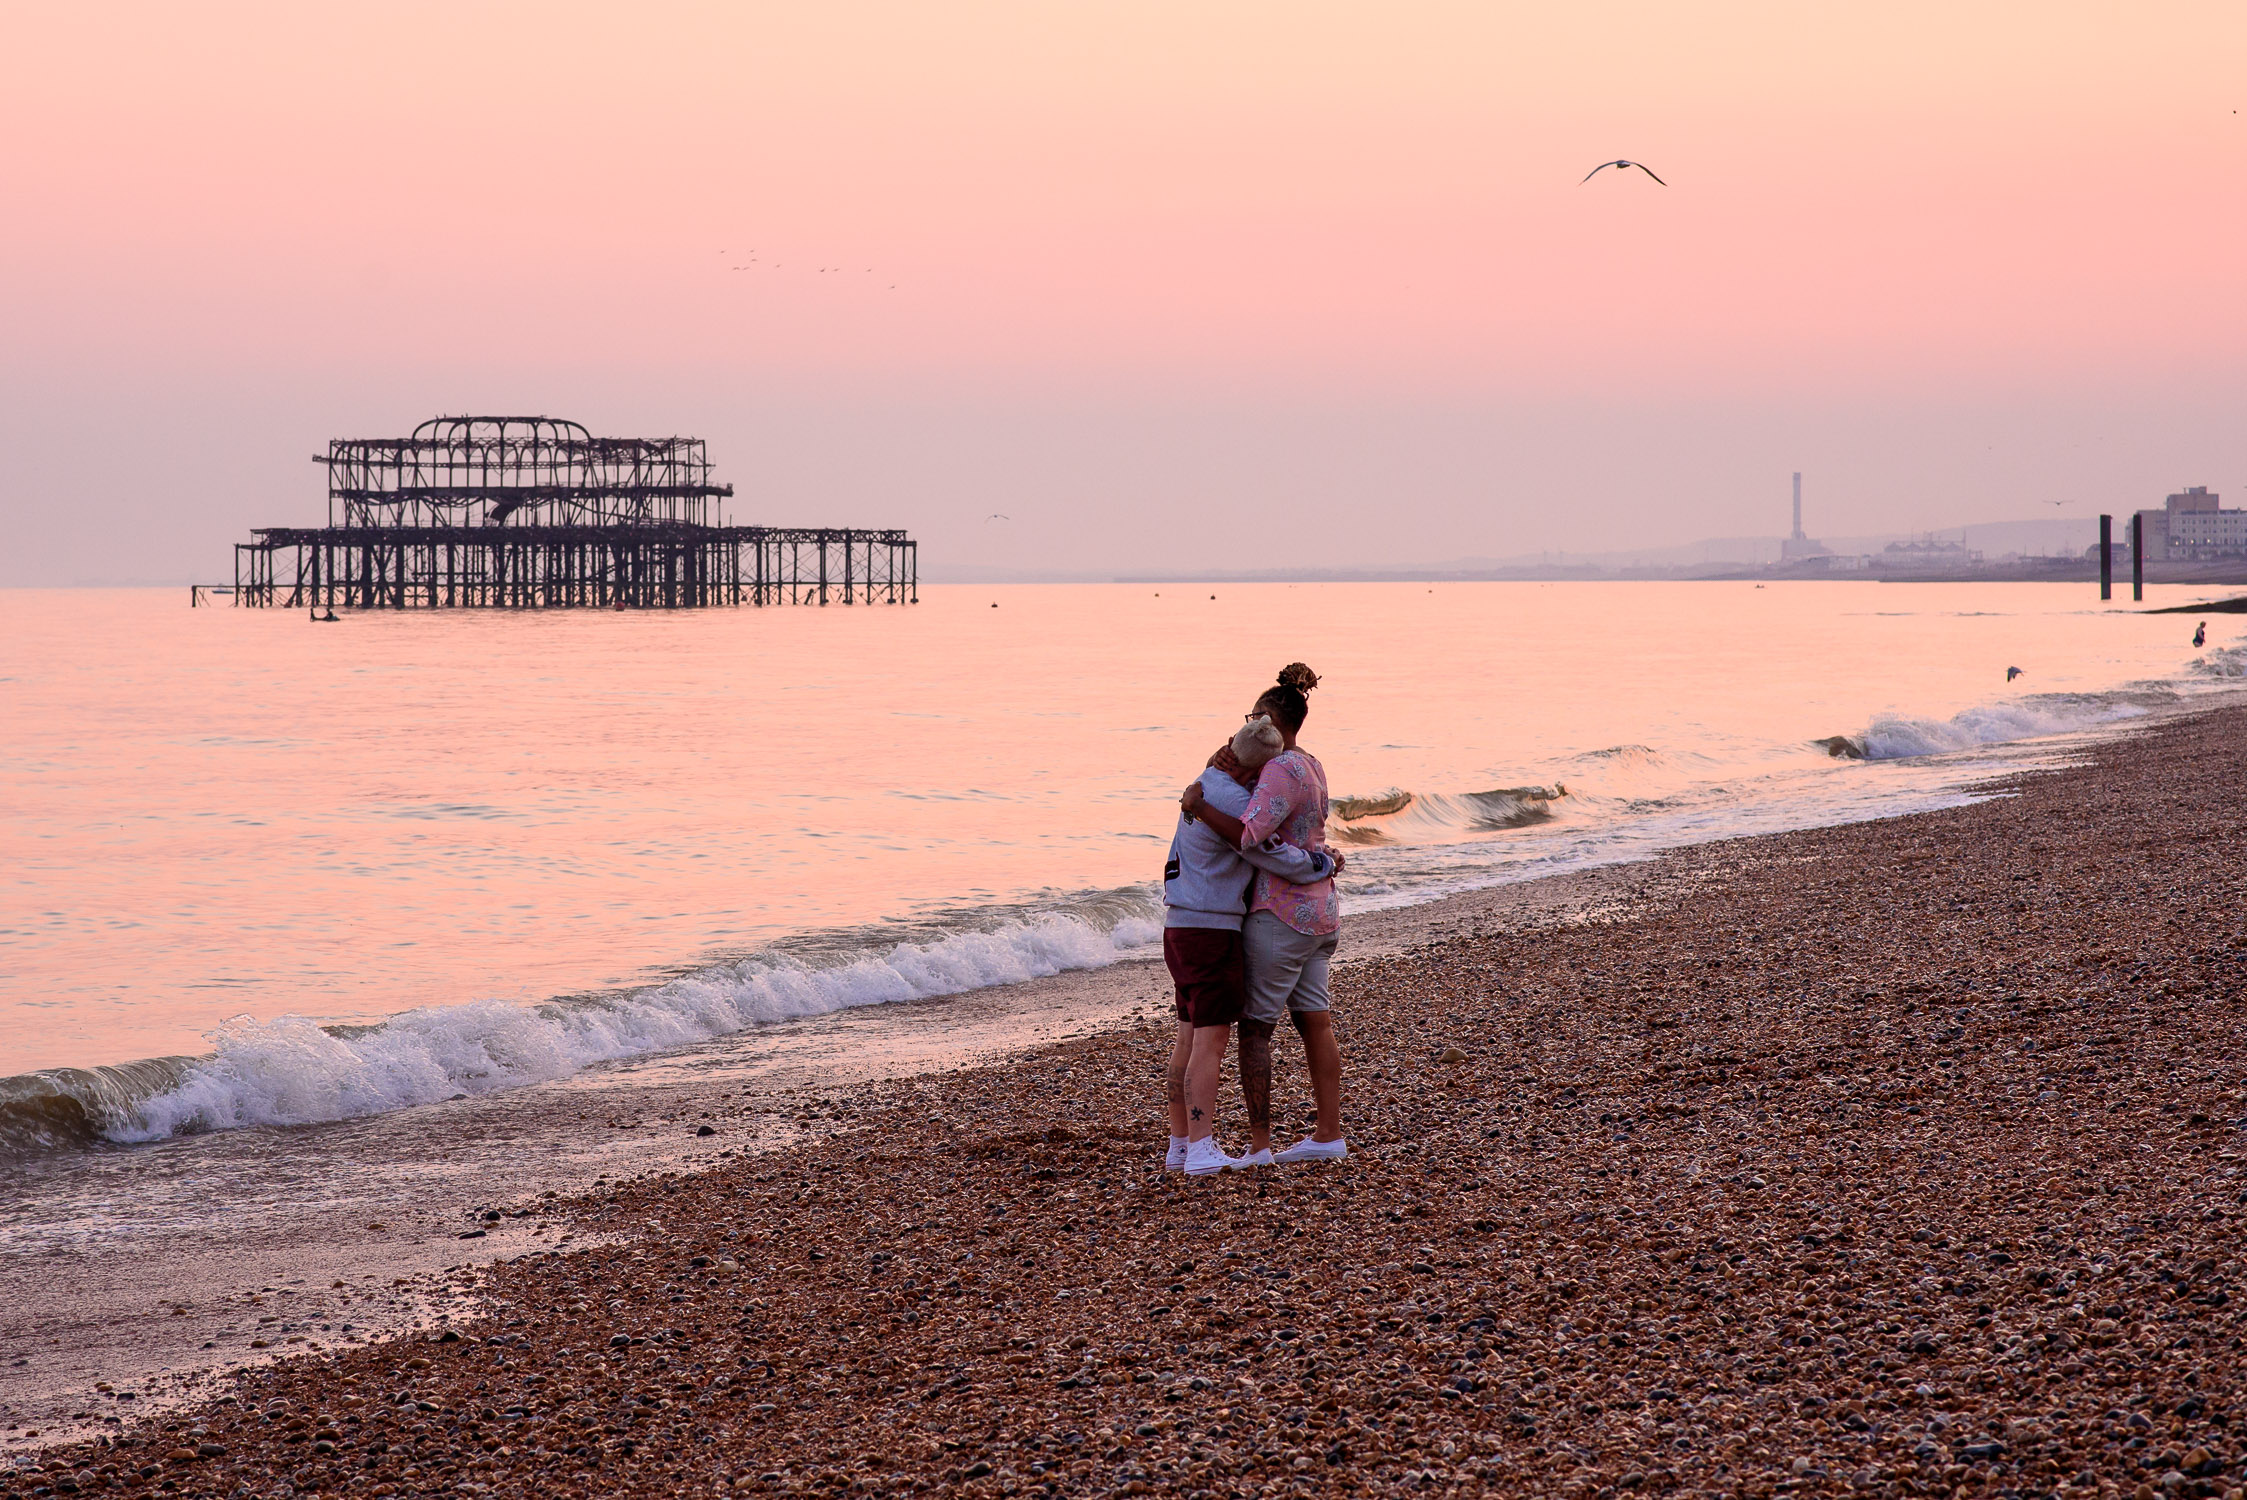 Brighton Wedding-Unique Engagement Photoshoot- Corina Photography- Pride Wedding- Brighton Pride- Unconventional Wedding- Quirky Wedding- Alternative Wedding